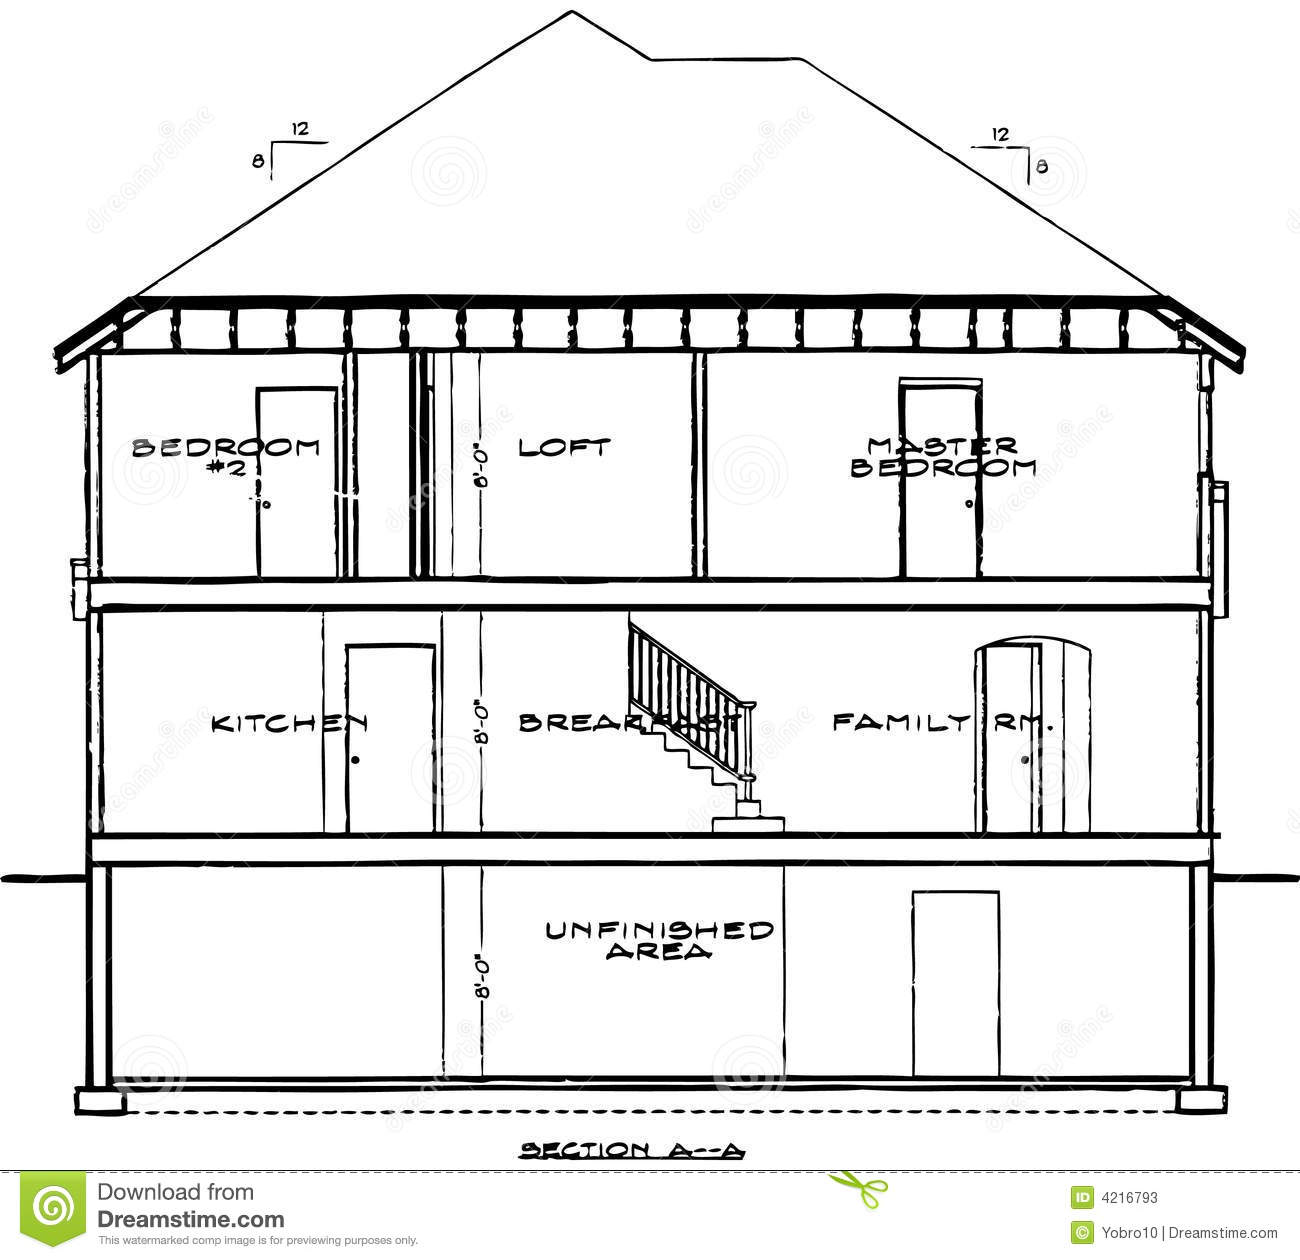 Https Www Dreamstime Com Stock Photos House Blueprint Image4216793